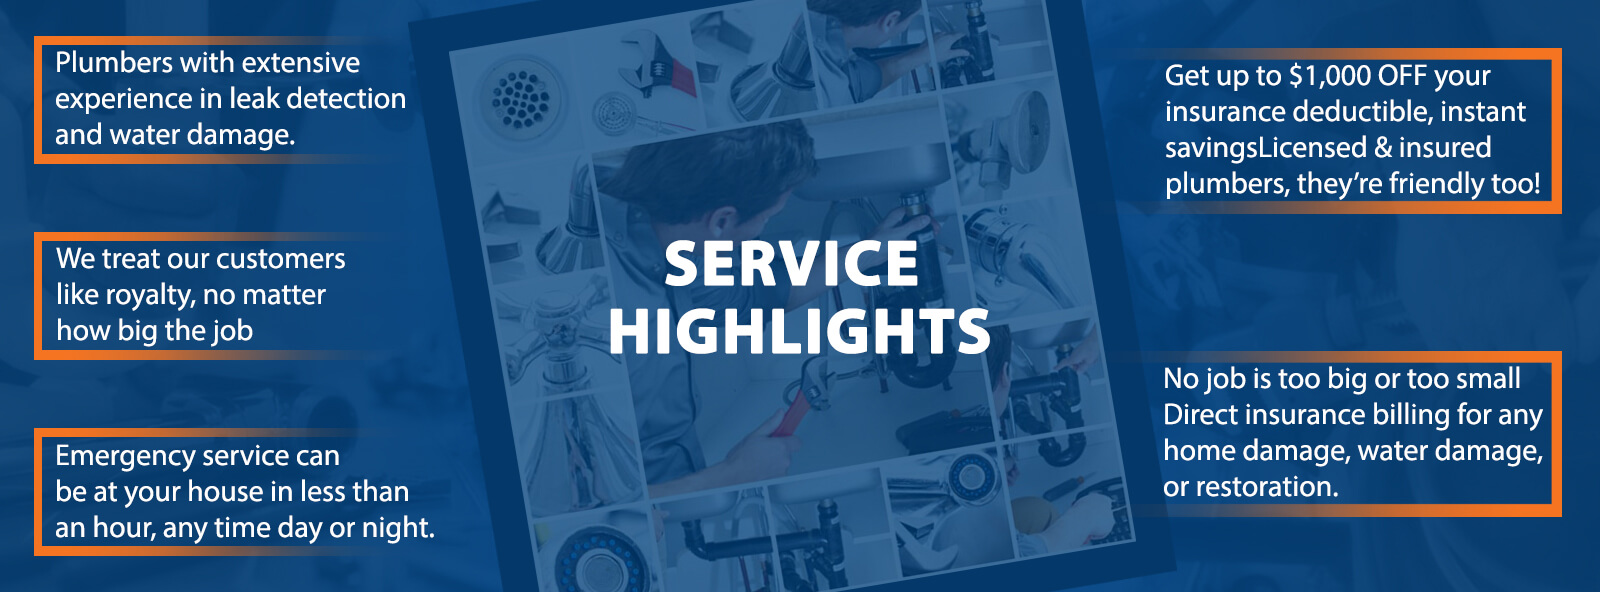 services-highlight-1